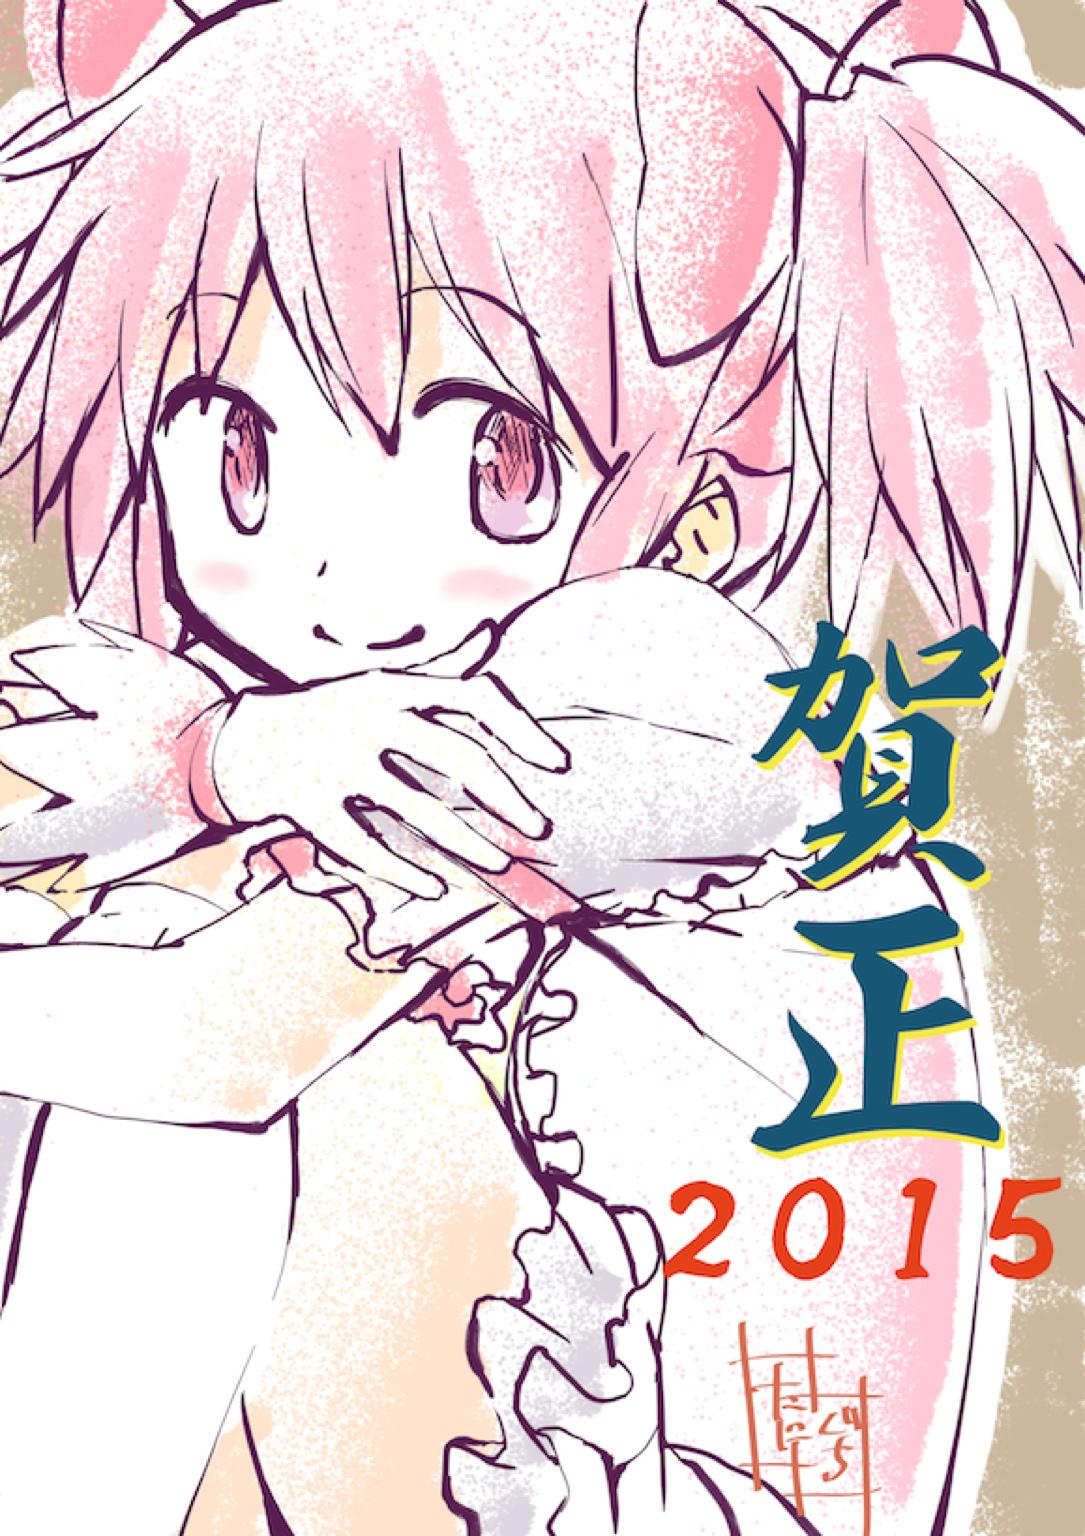 1girl 2015 bare_legs beige_background blush breasts close-up closed_mouth commentary_request crossed_arms dot_nose eyebrows_visible_through_hair frilled_skirt frilled_sleeves frills gloves hair_between_eyes hair_ribbon happy highres kaname_madoka knees_to_chest leg_hug looking_away magical_girl mahou_shoujo_madoka_magica pink_eyes pink_hair pink_ribbon pink_theme puffy_short_sleeves puffy_sleeves ribbon short_sleeves short_twintails signature simple_background sitting skirt small_breasts smile solo taniguchi_jun'ichirou thighs translation_request twintails upper_body white_gloves white_skirt